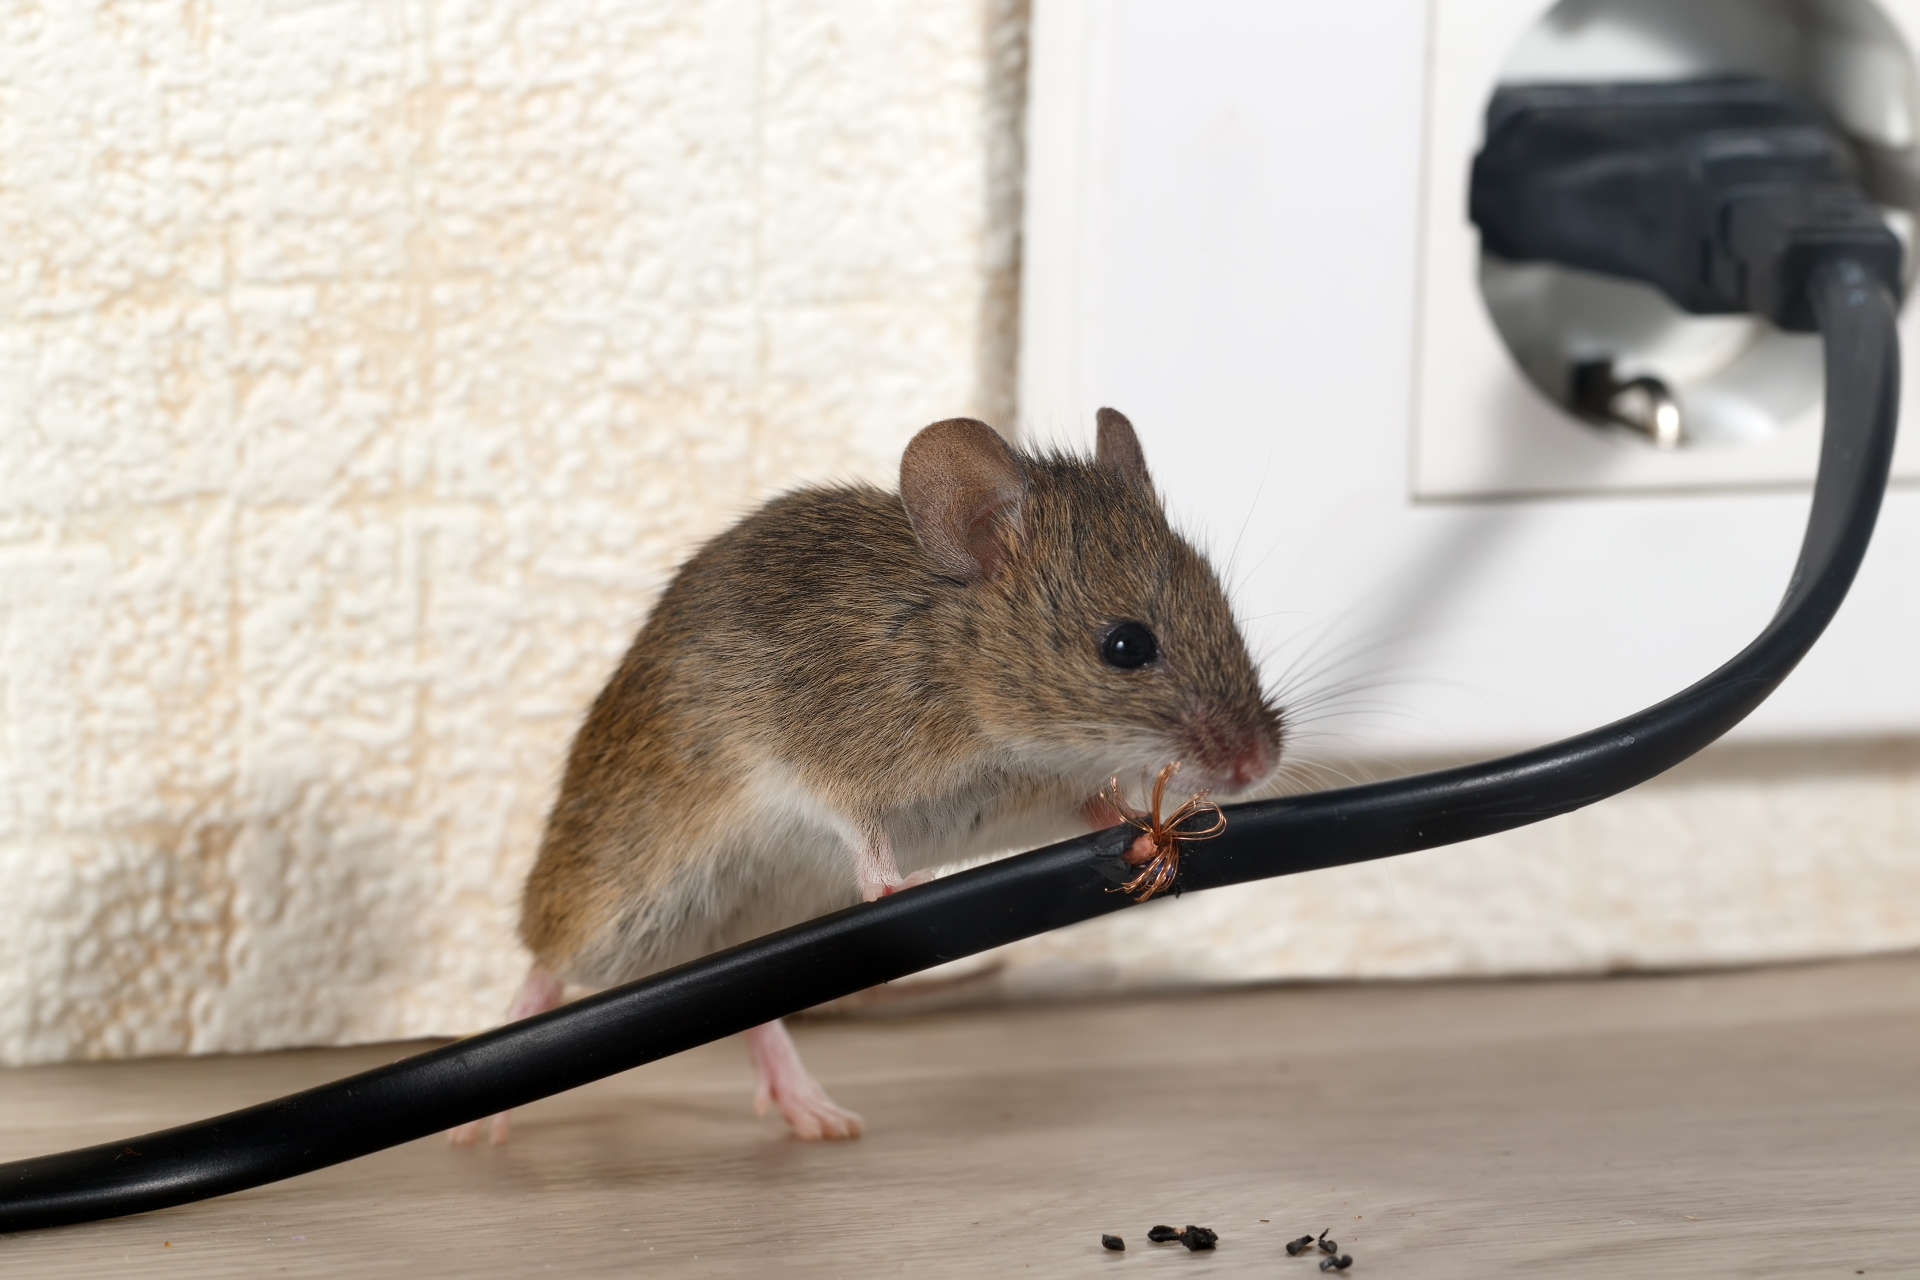 Mice Infestation, Pest Control in Brixton, SW2. Call Now 020 8166 9746